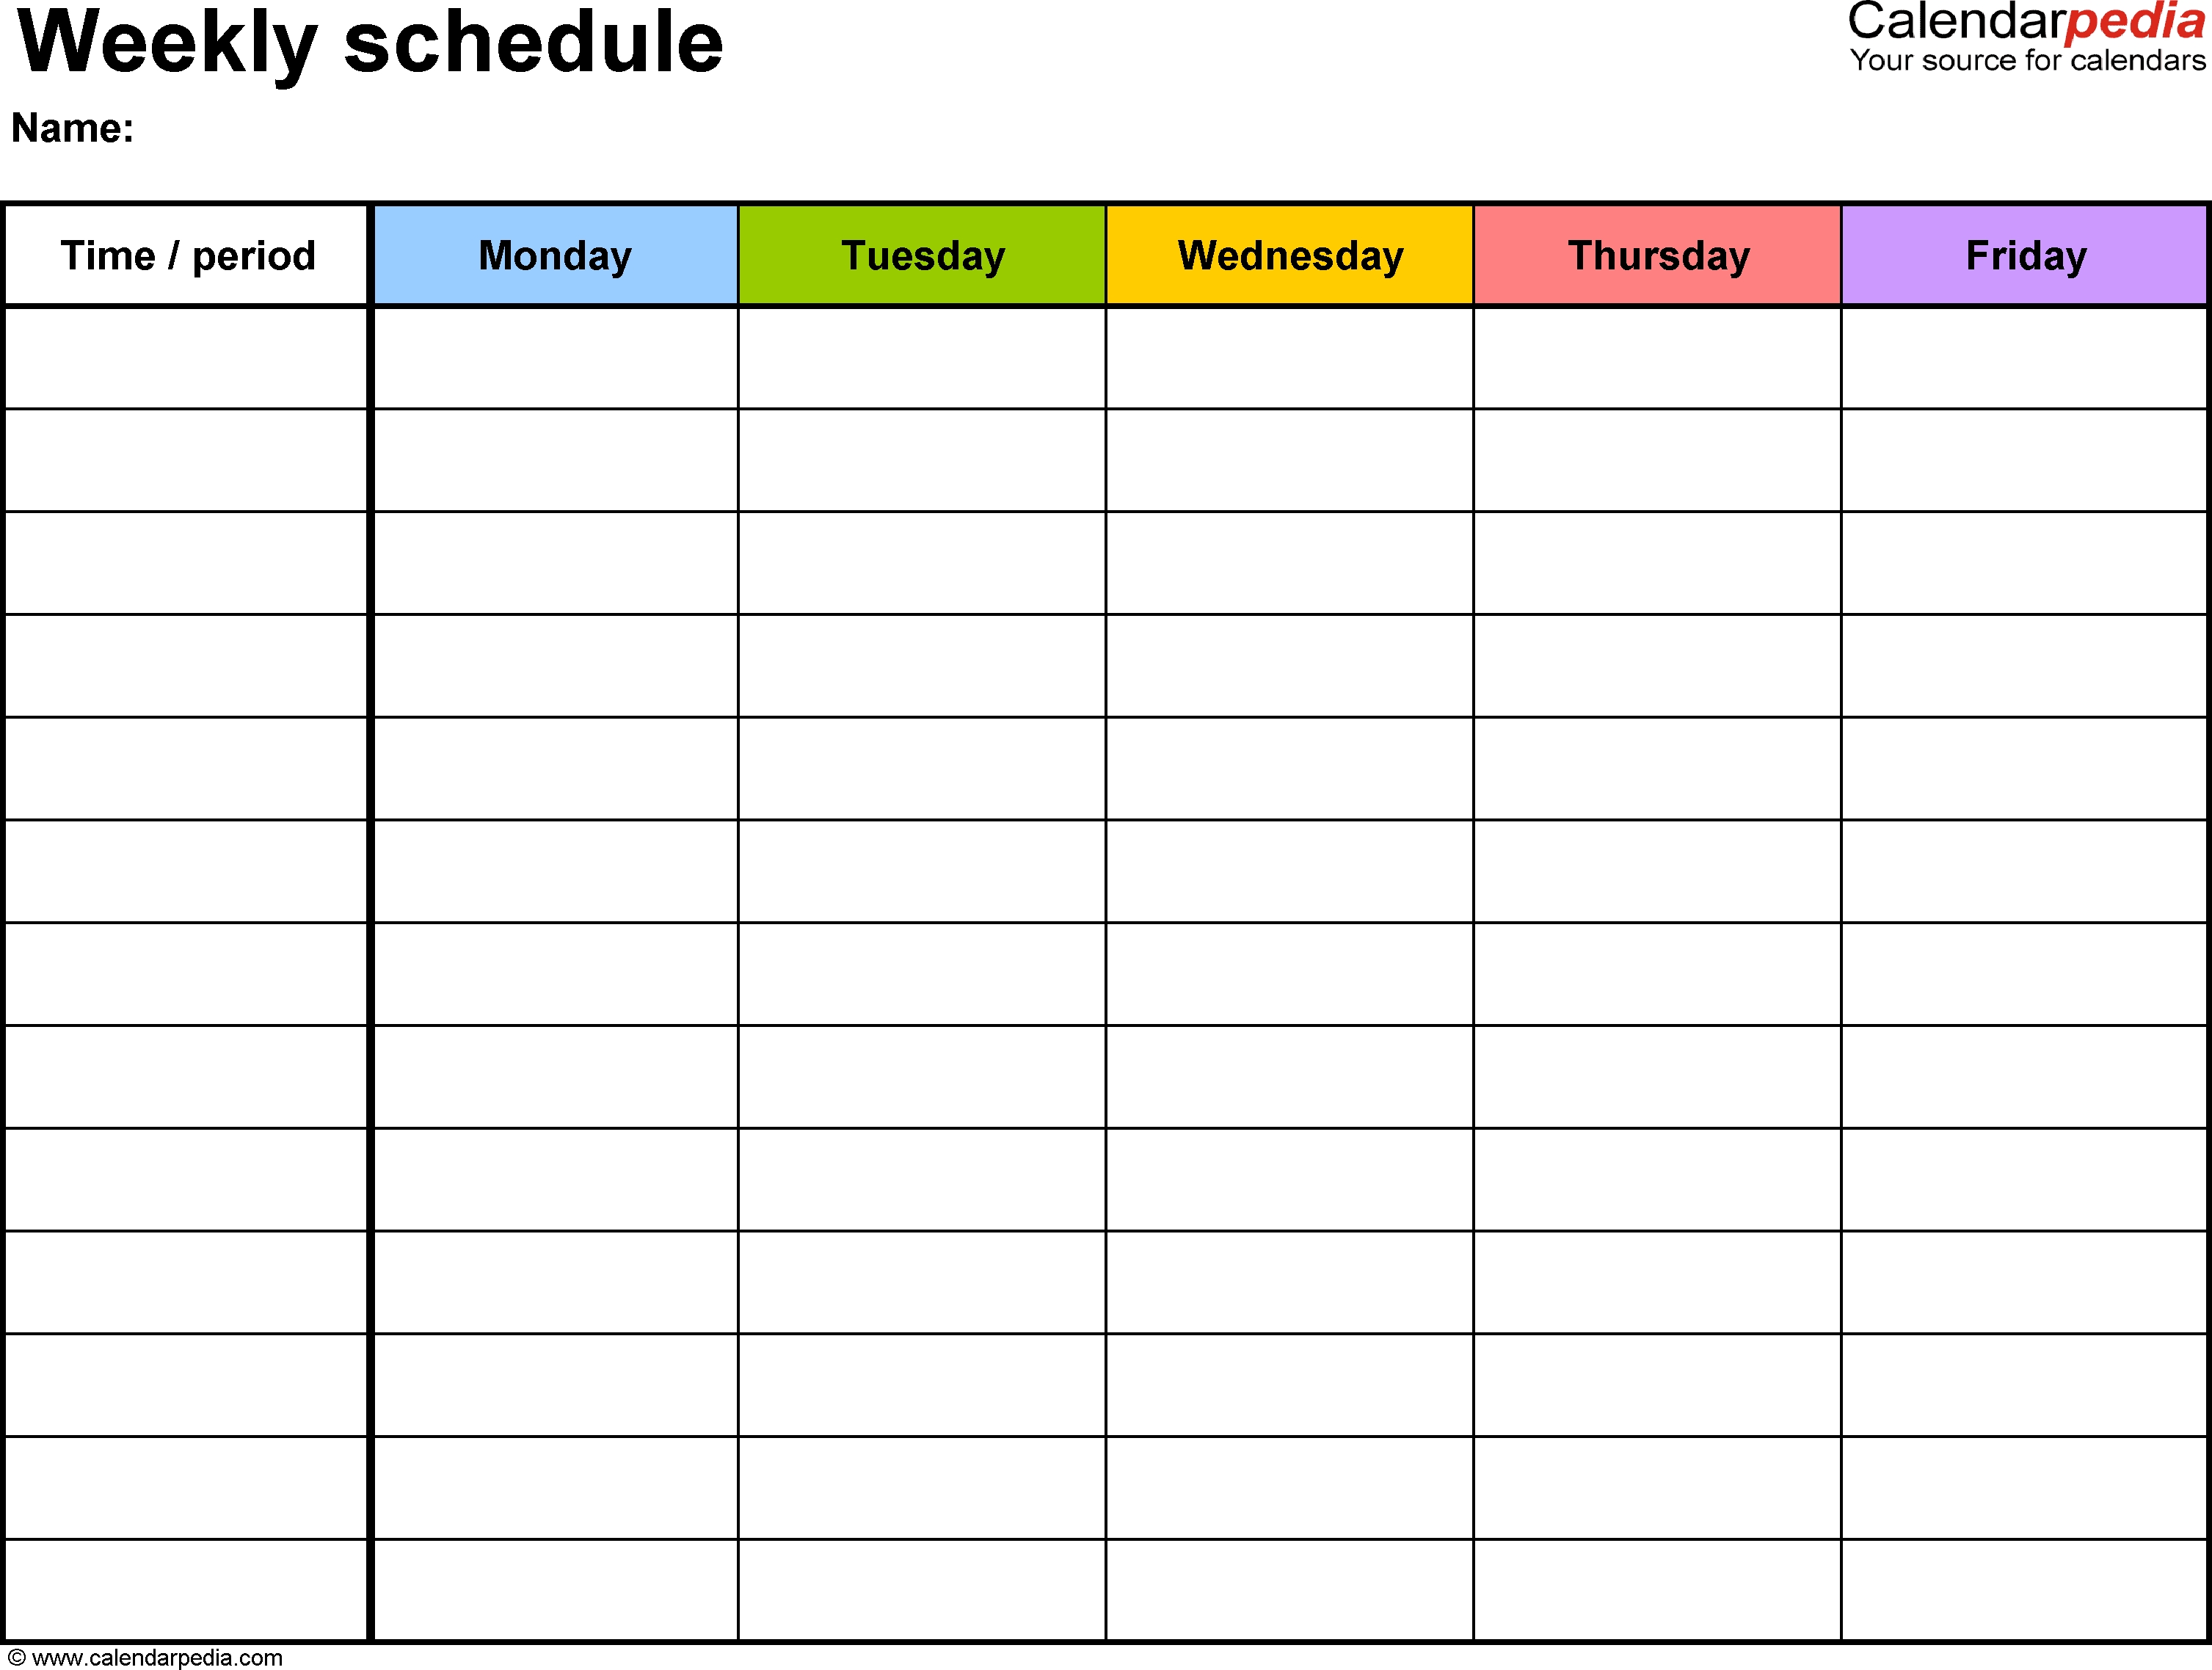 Free Weekly Schedule Templates For Excel 18 Templates3abry